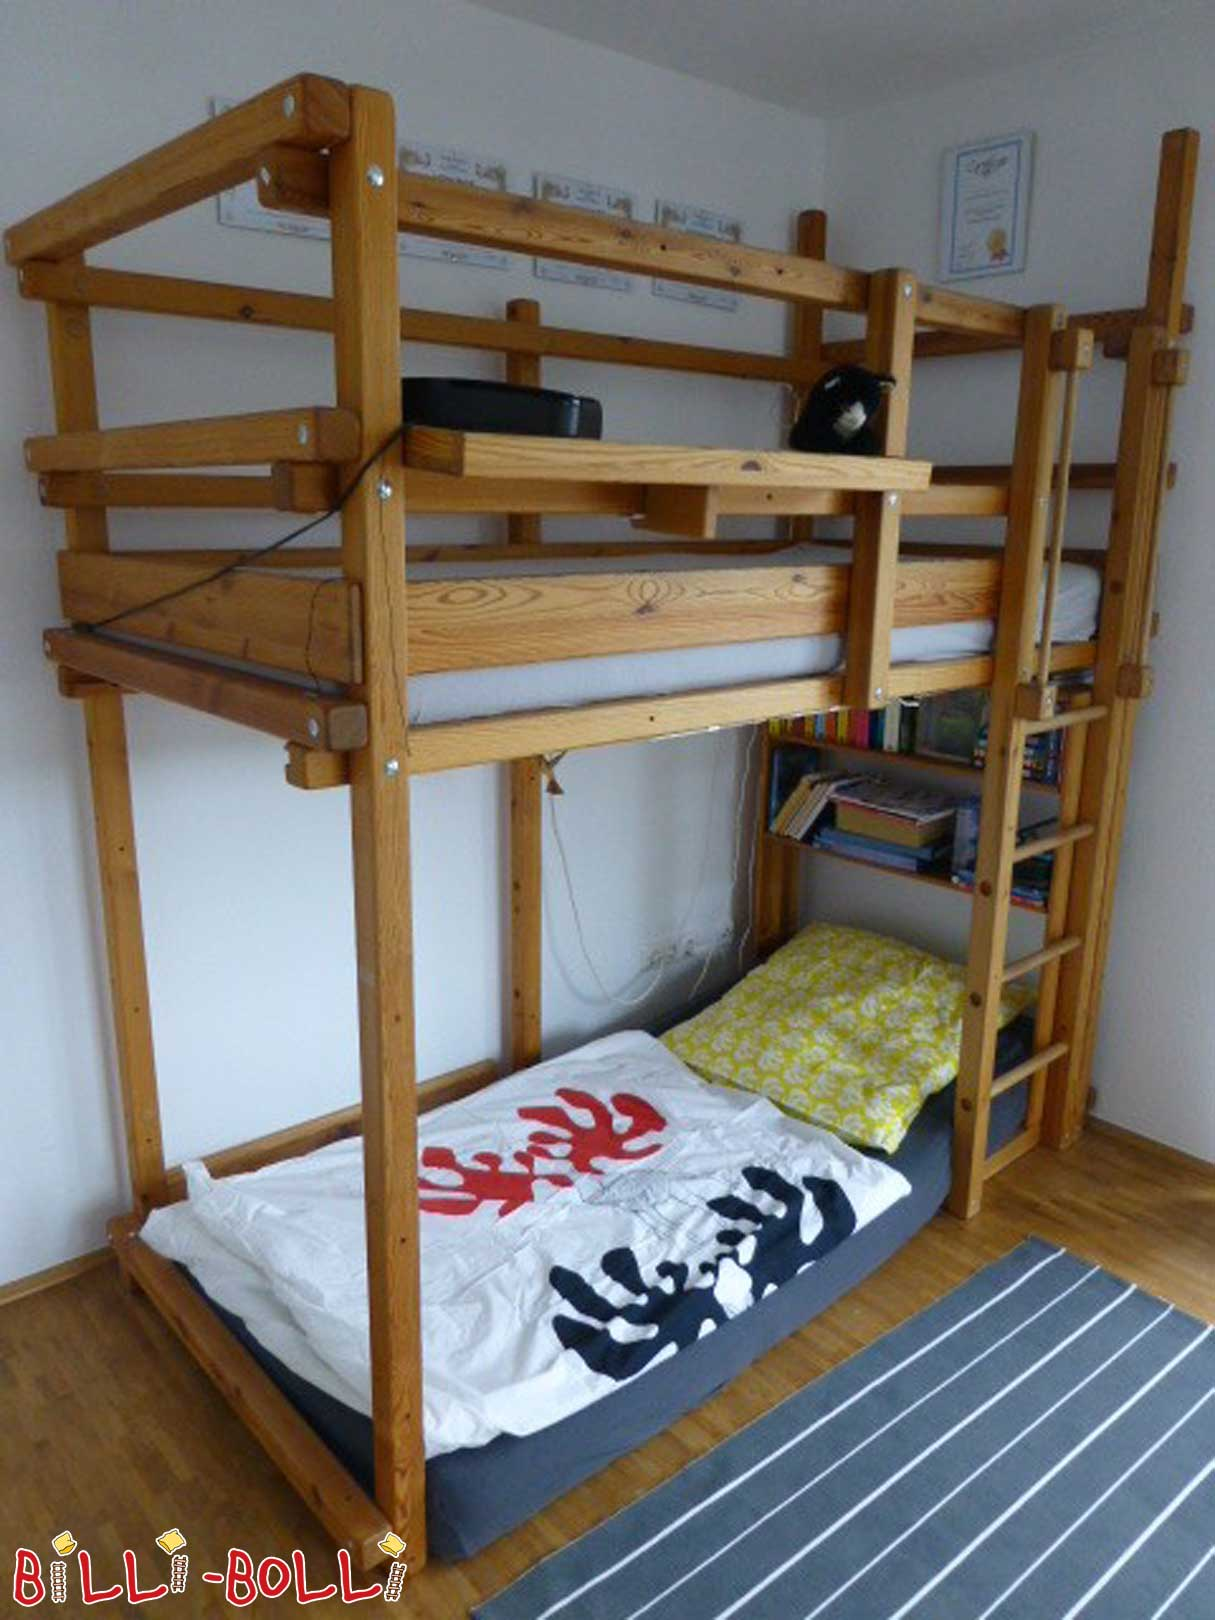 Billi Bolli with growing bunk bed oiled over corner jaw (second hand loft bed)